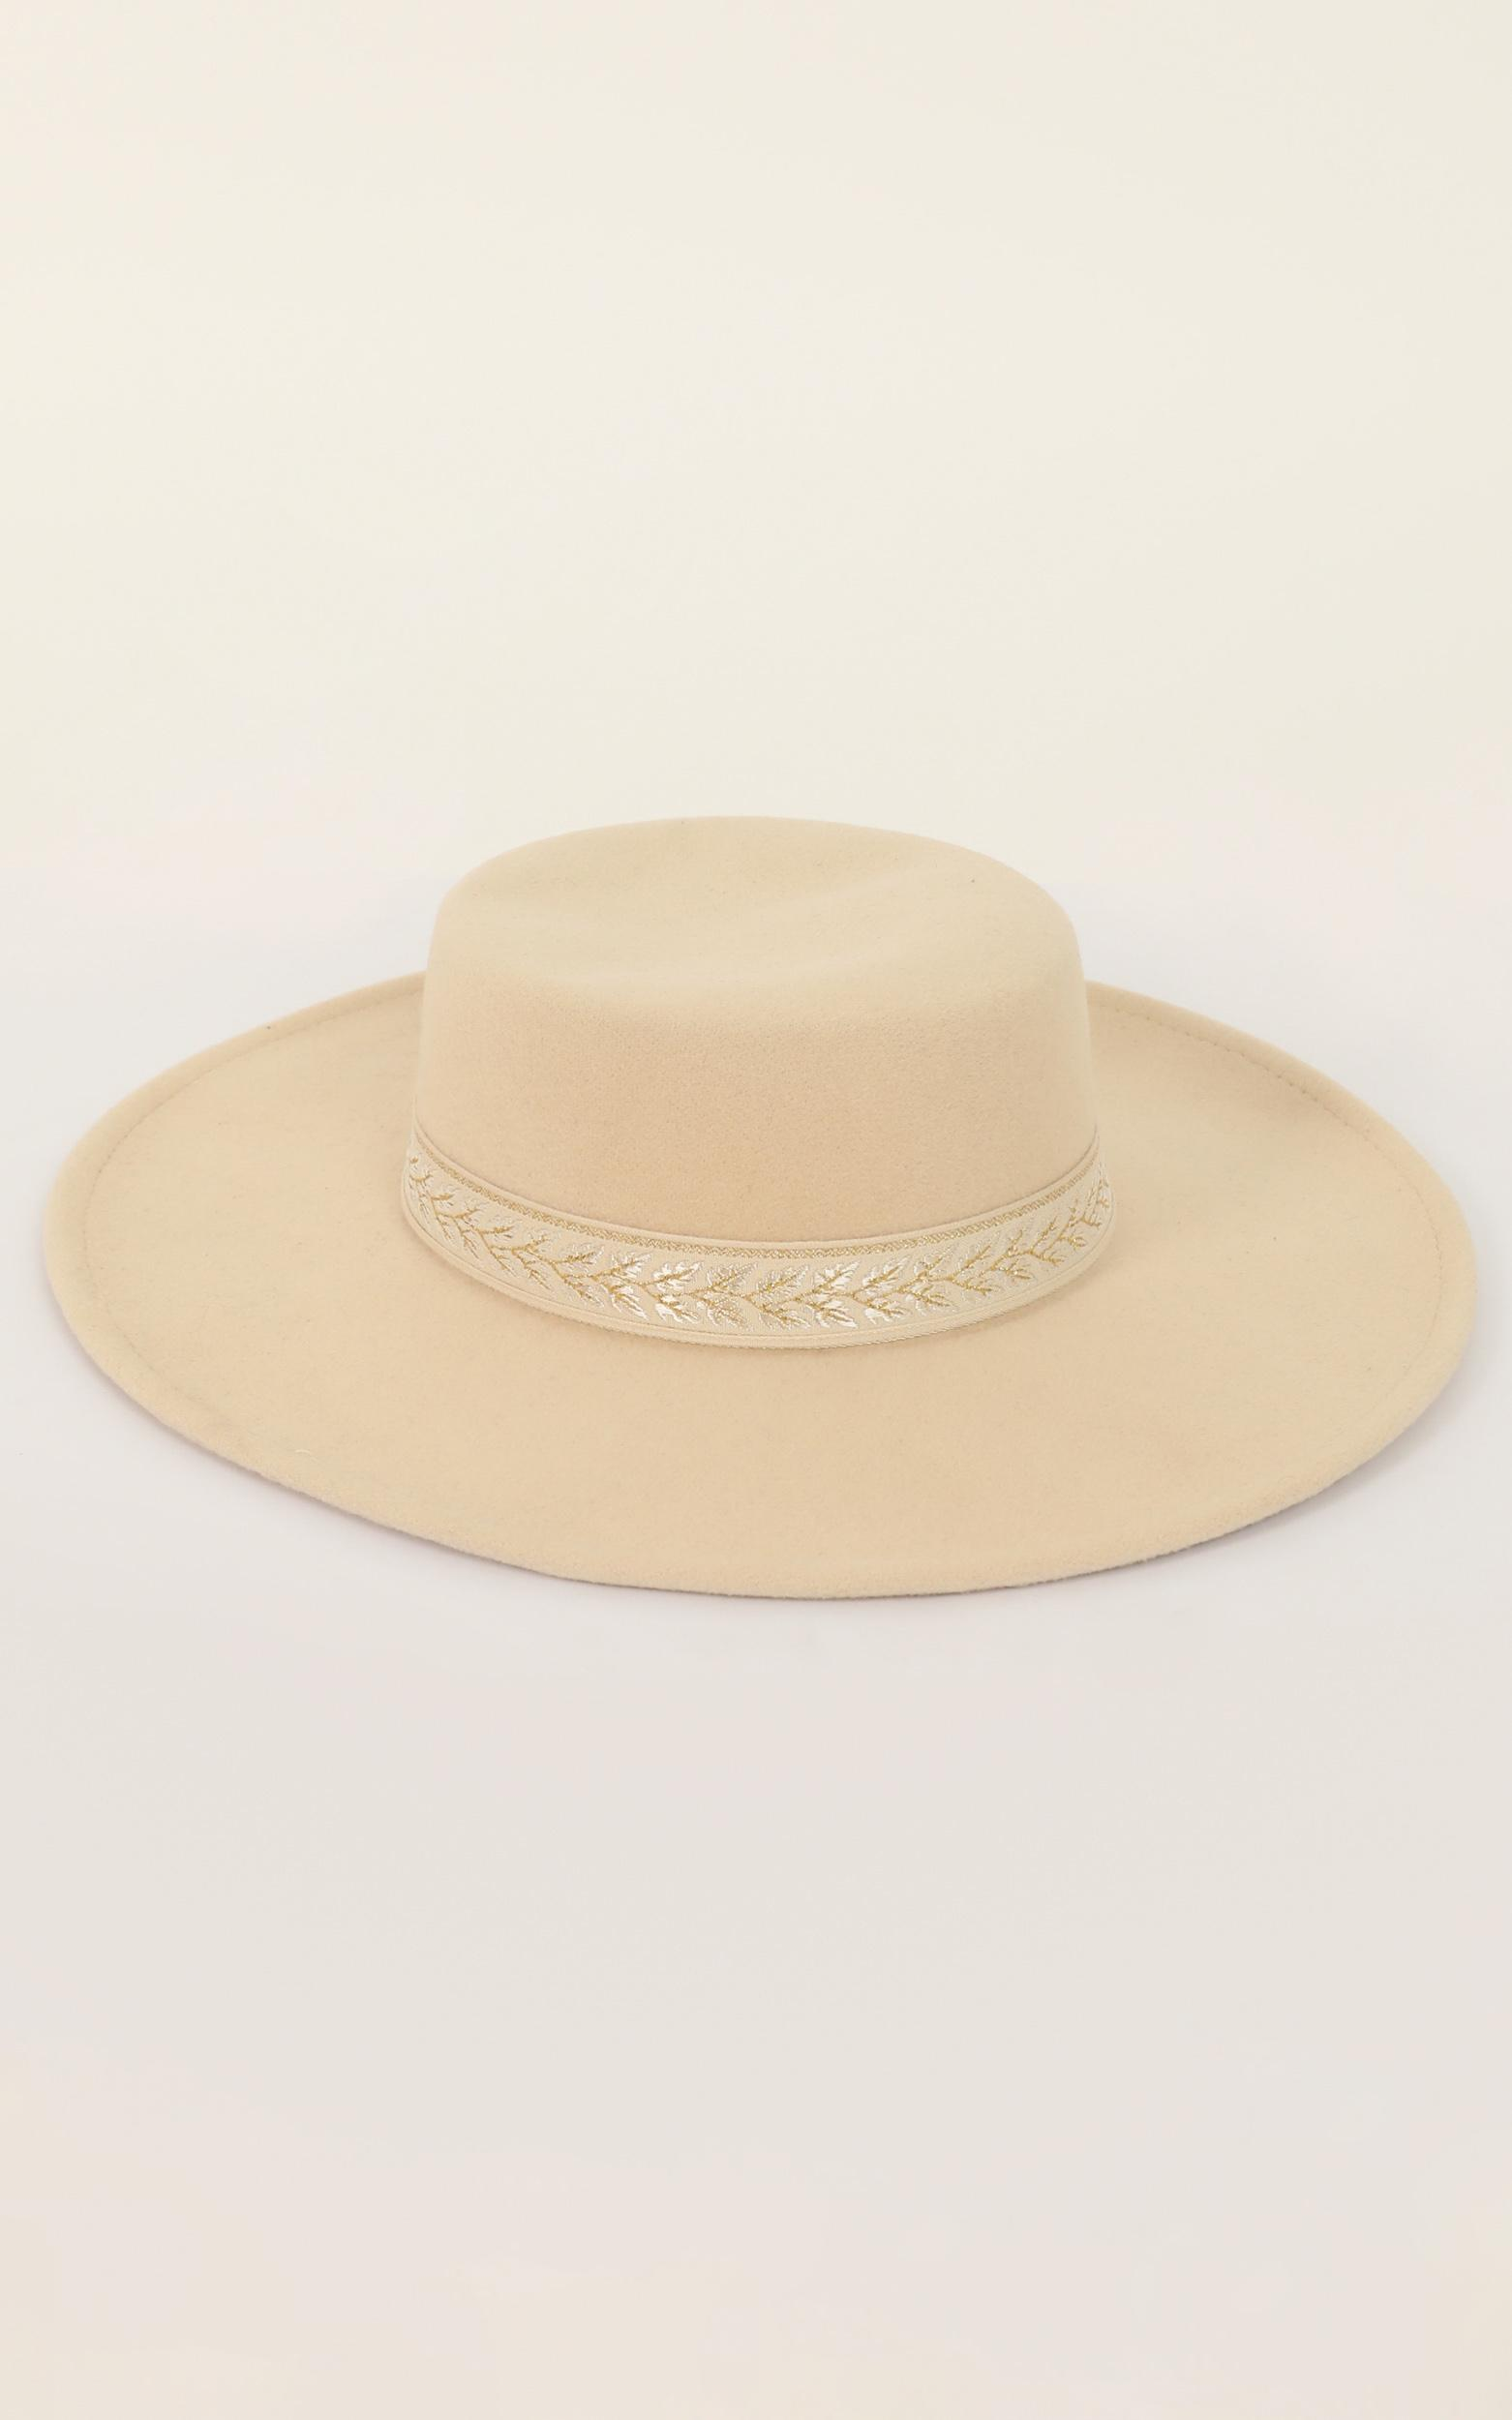 Savannah Boater Hat In Cream, , hi-res image number null